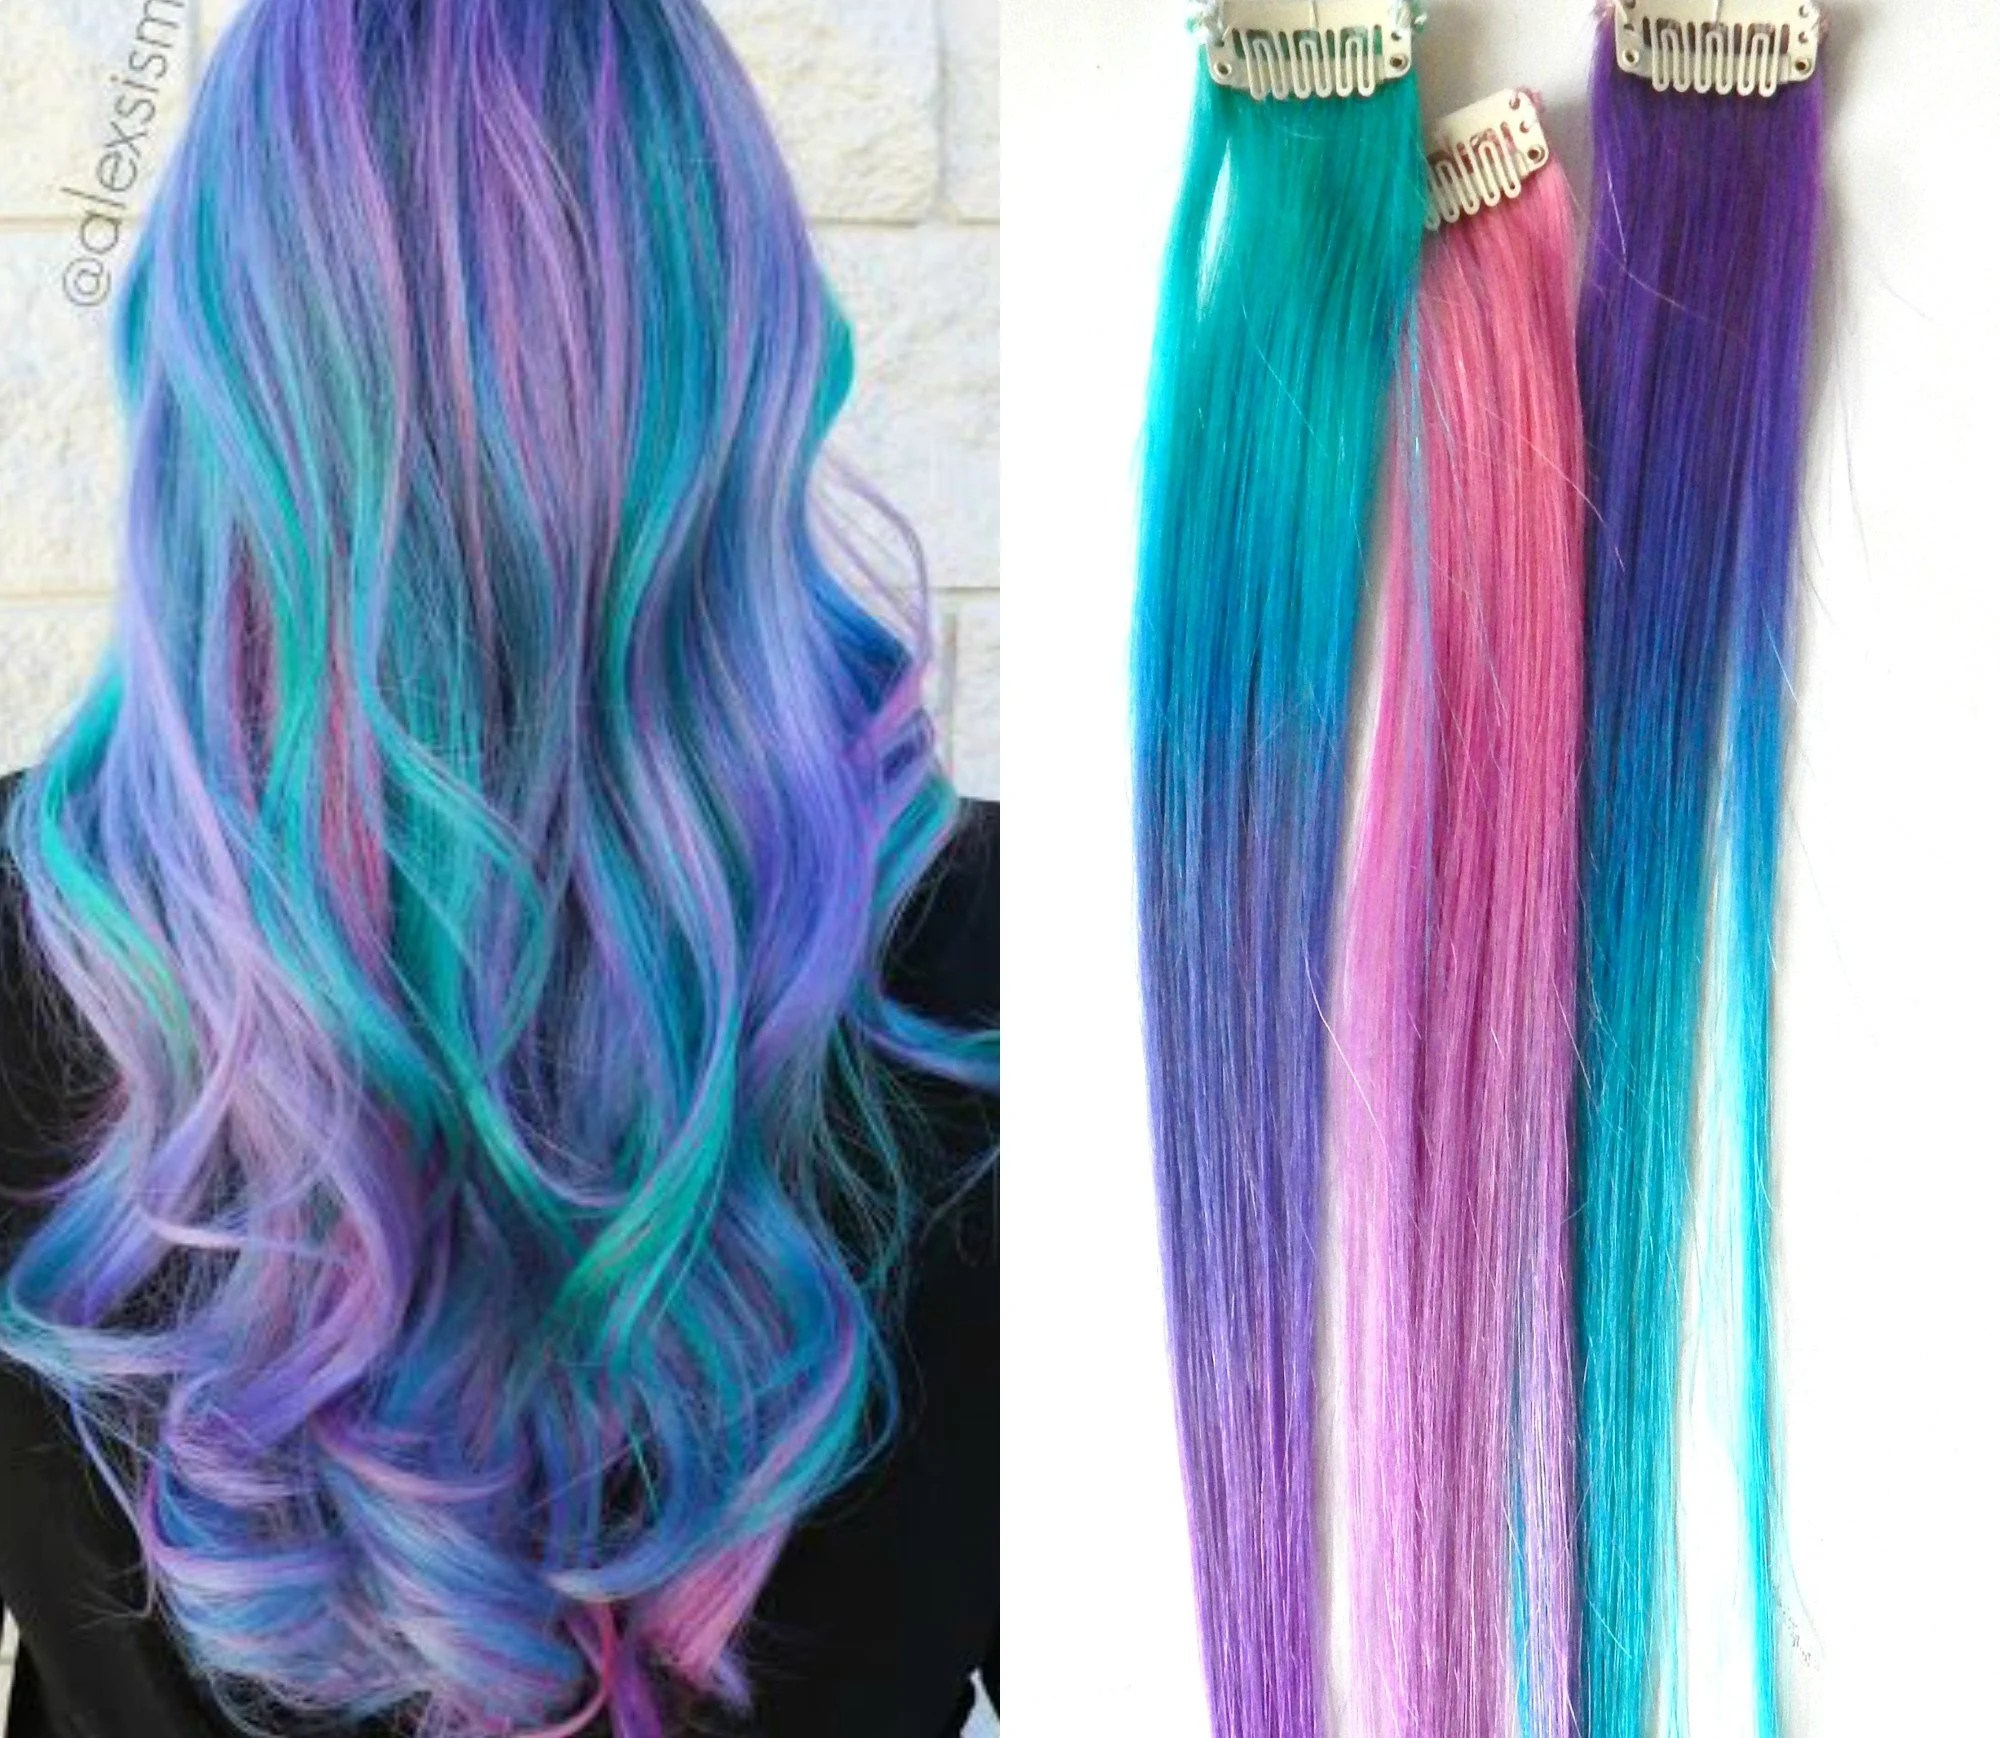 mermaid ombre hair extensions cotton